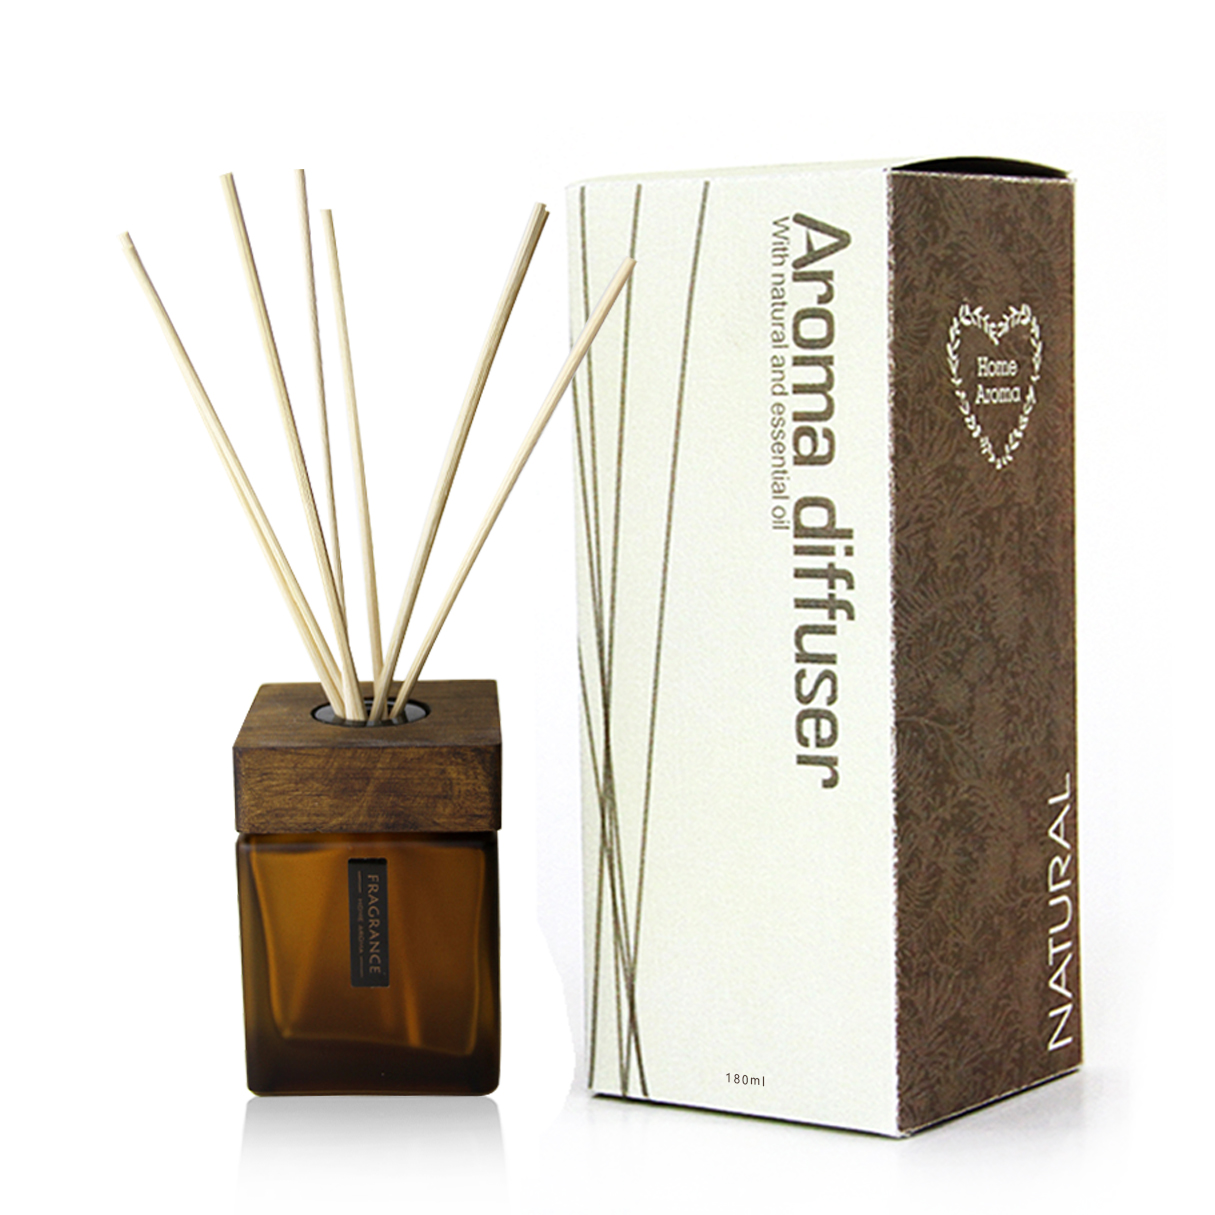 Elegant White Square Glass Bottle Taxta Diffuser